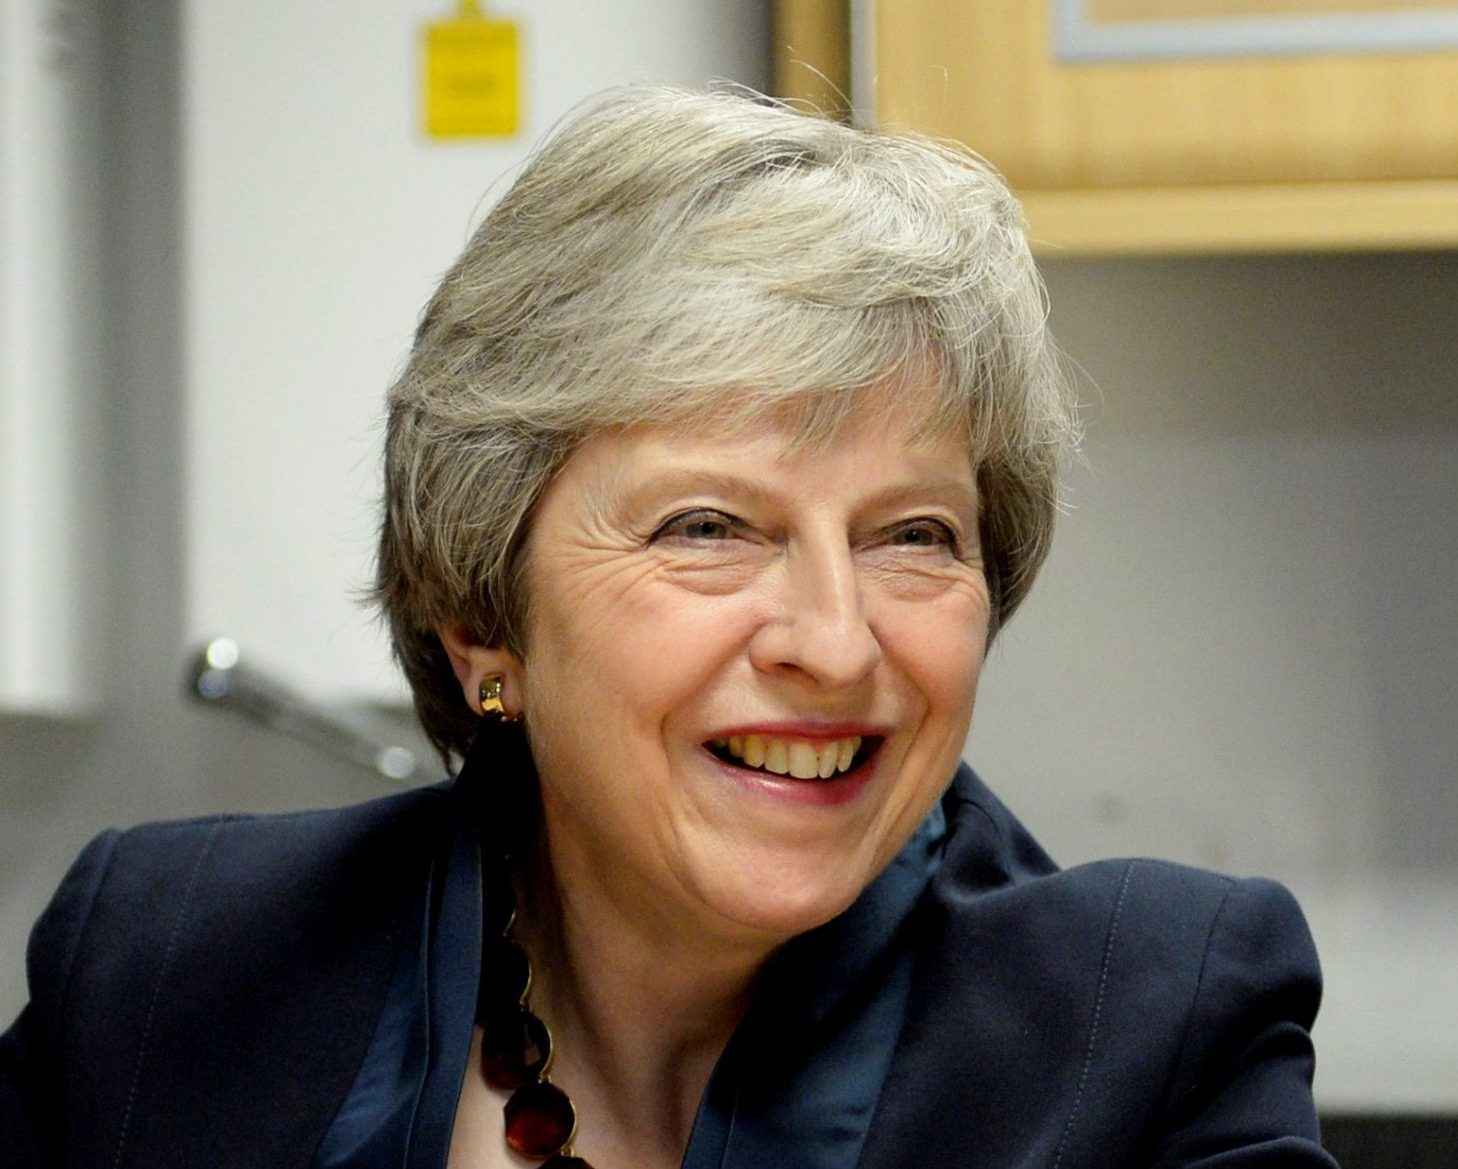 Prime Minister Theresa May visiting Bridge of Weir, Fine Scottish Leather In Bridge of Weir outside Glasgow, Scotland. November 28, 2018. The prime minister seeks to build support for her Brexit deal ahead of next month's vote in the Commons. Theresa May will insist that the deal will protect jobs and provide new opportunities for exporters as she meets factory workers in Glasgow. Her Brexit agreement won the support of EU leaders at the weekend. But it has faced strong criticism from opposition parties - as well as from many of her own MPs.